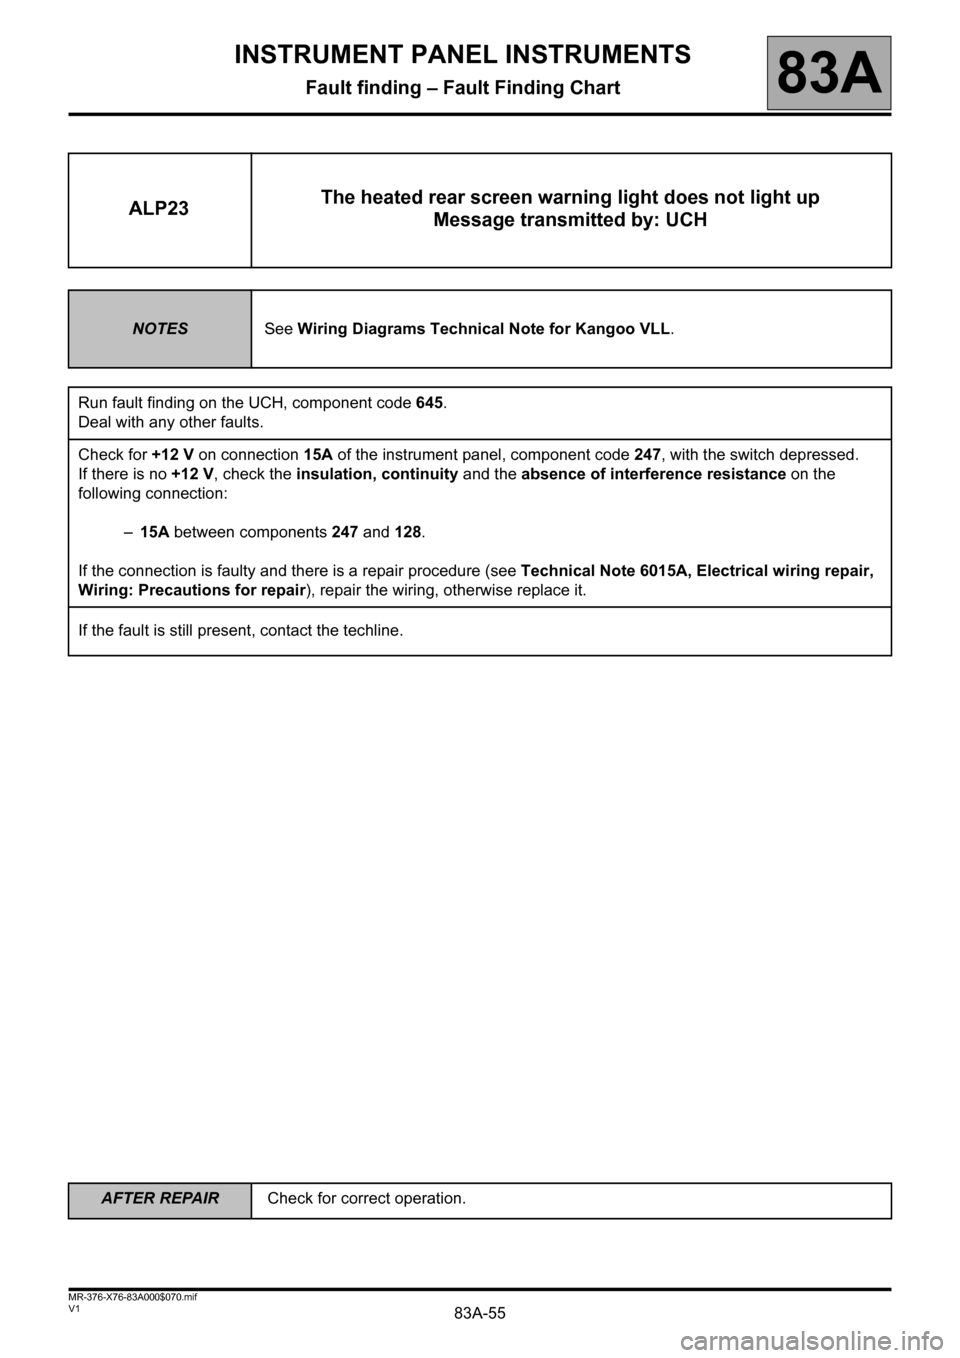 RENAULT KANGOO 2013 X61 / 2.G Instrument Panel Instruments Workshop Manual, Page 55